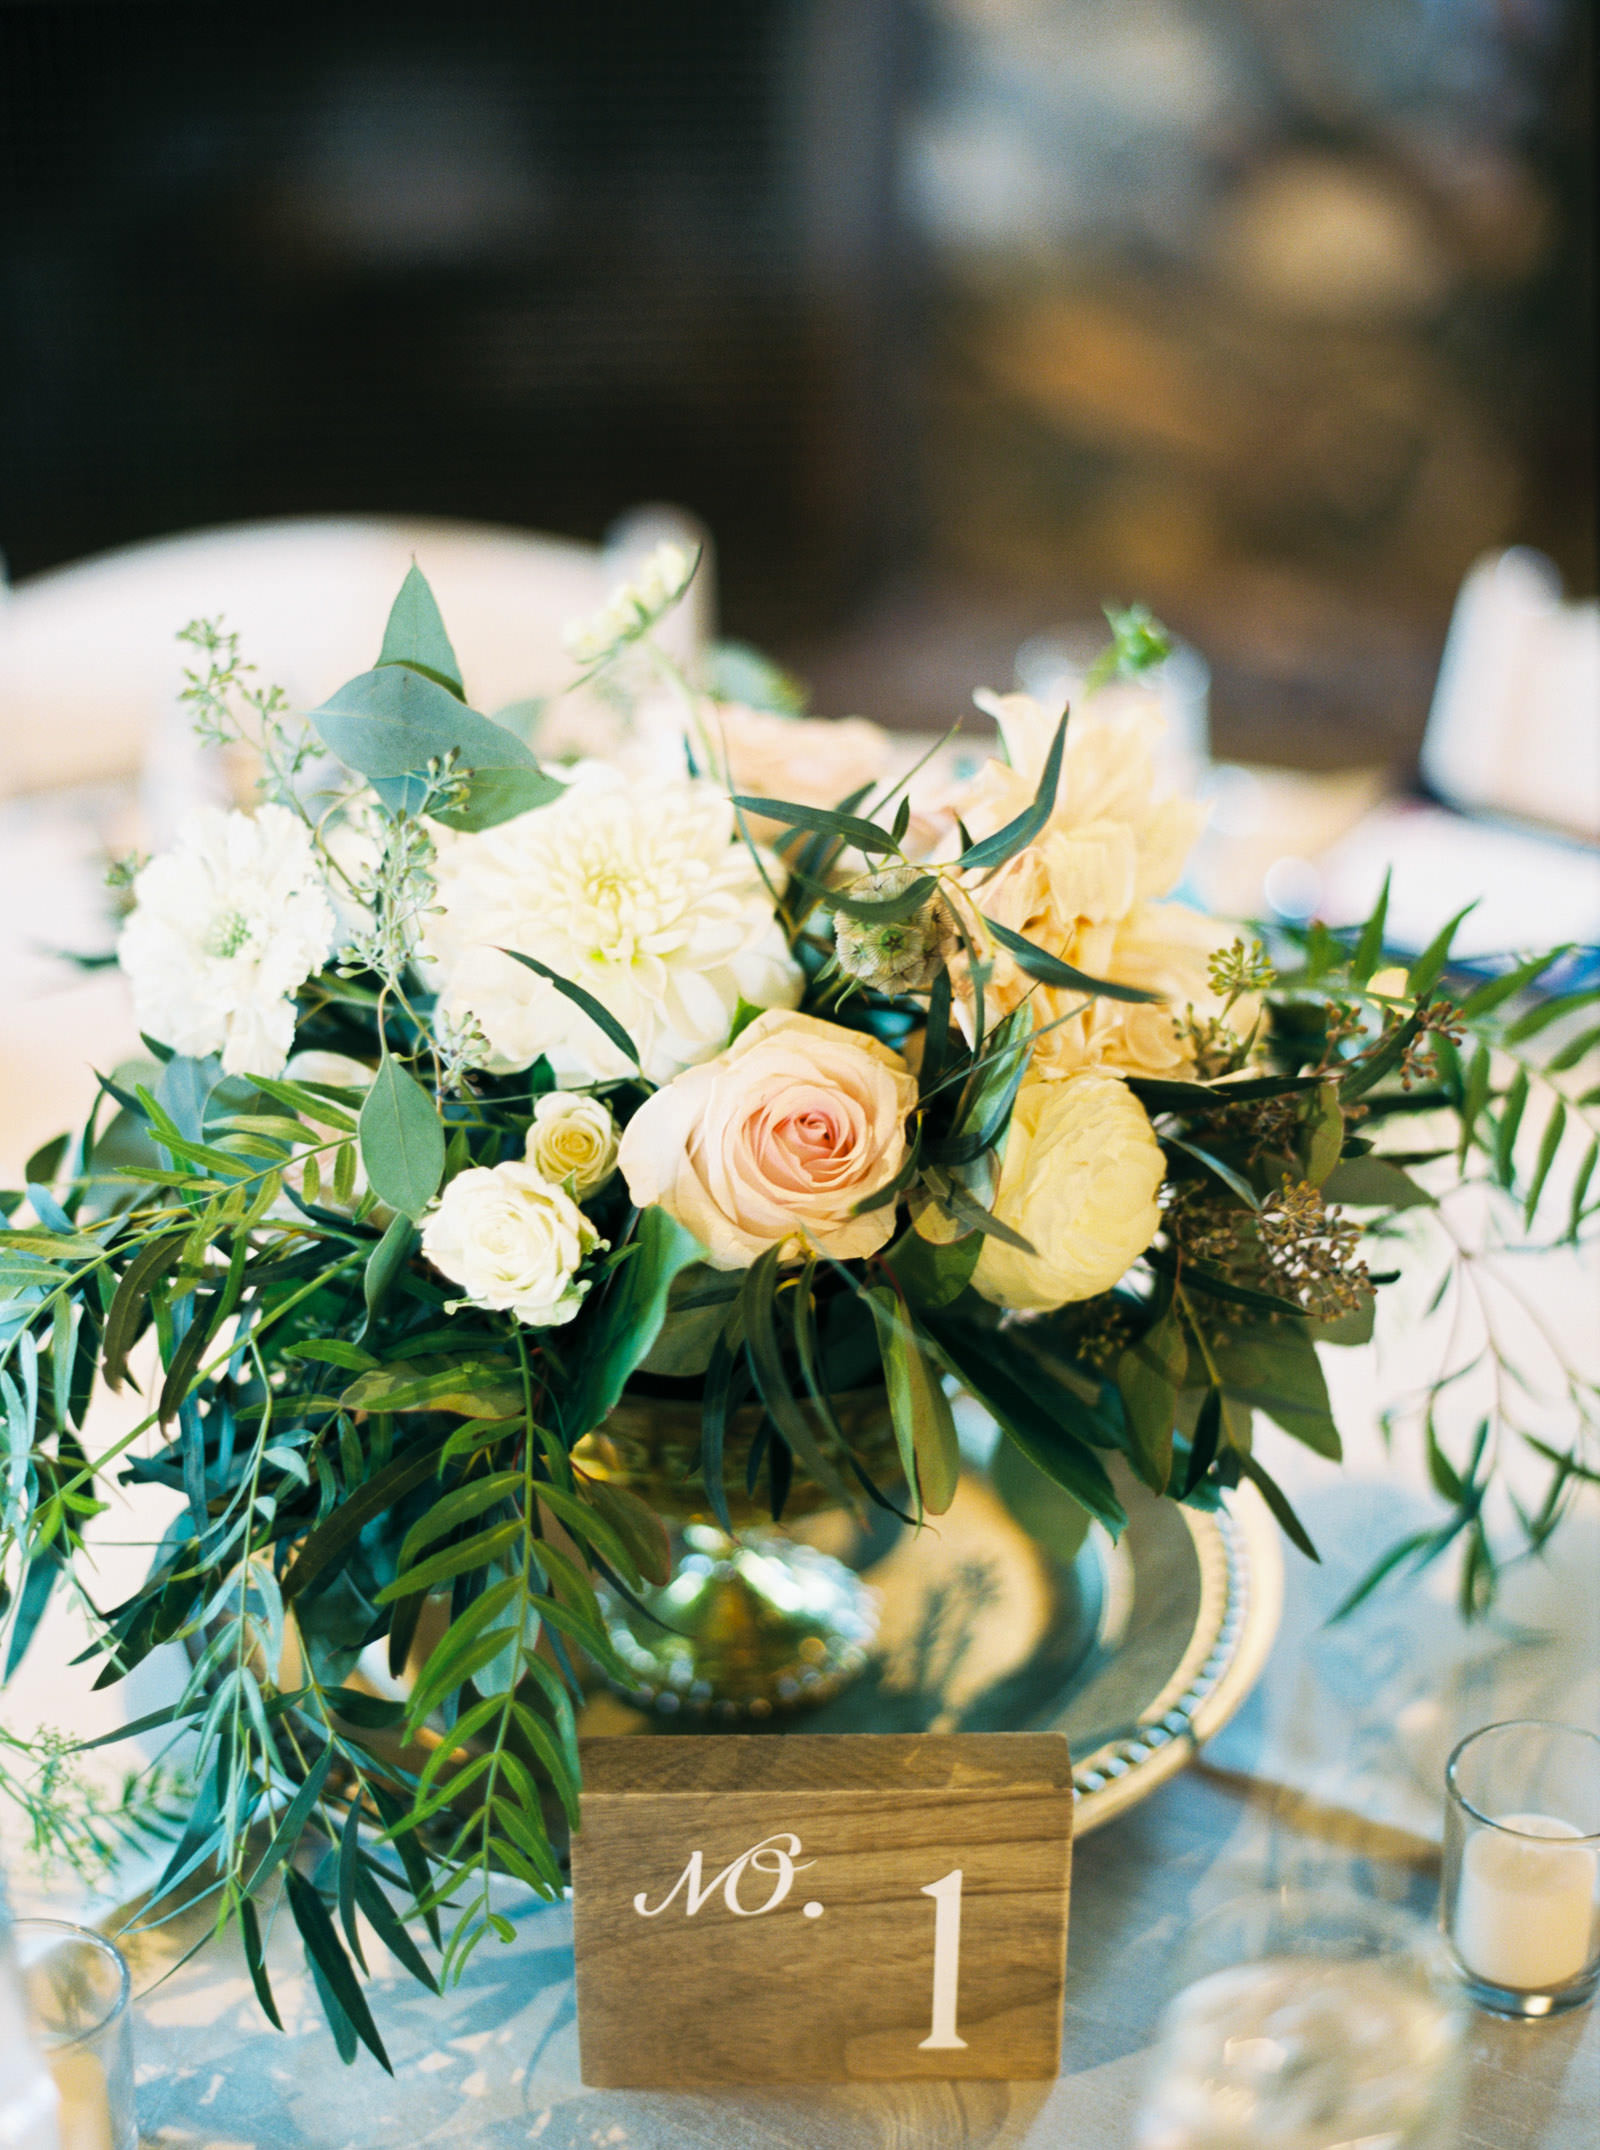 Reception details at a fall Kelley Farms Wedding captured by Film Photographer Anna Peters